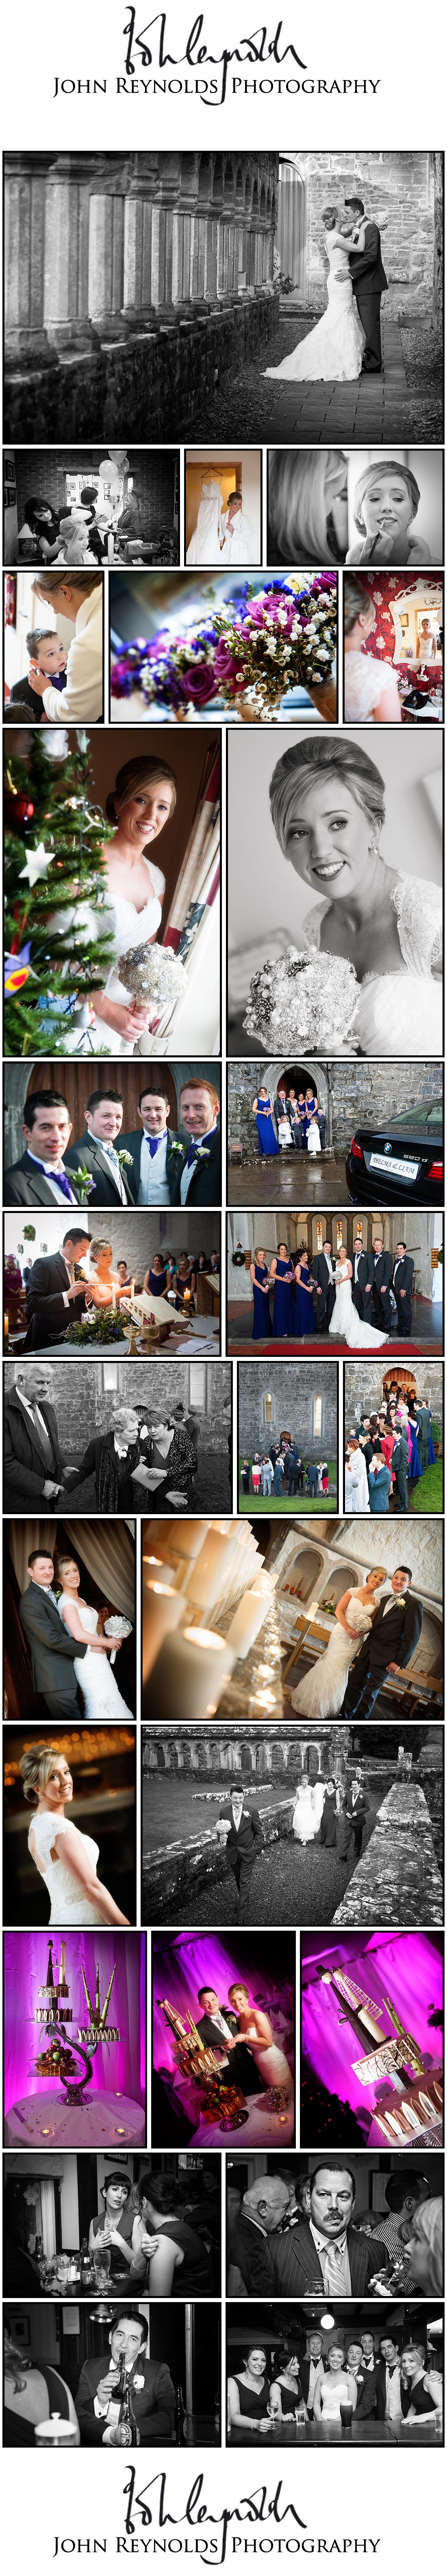 Blog Collage-Thelma & Liam